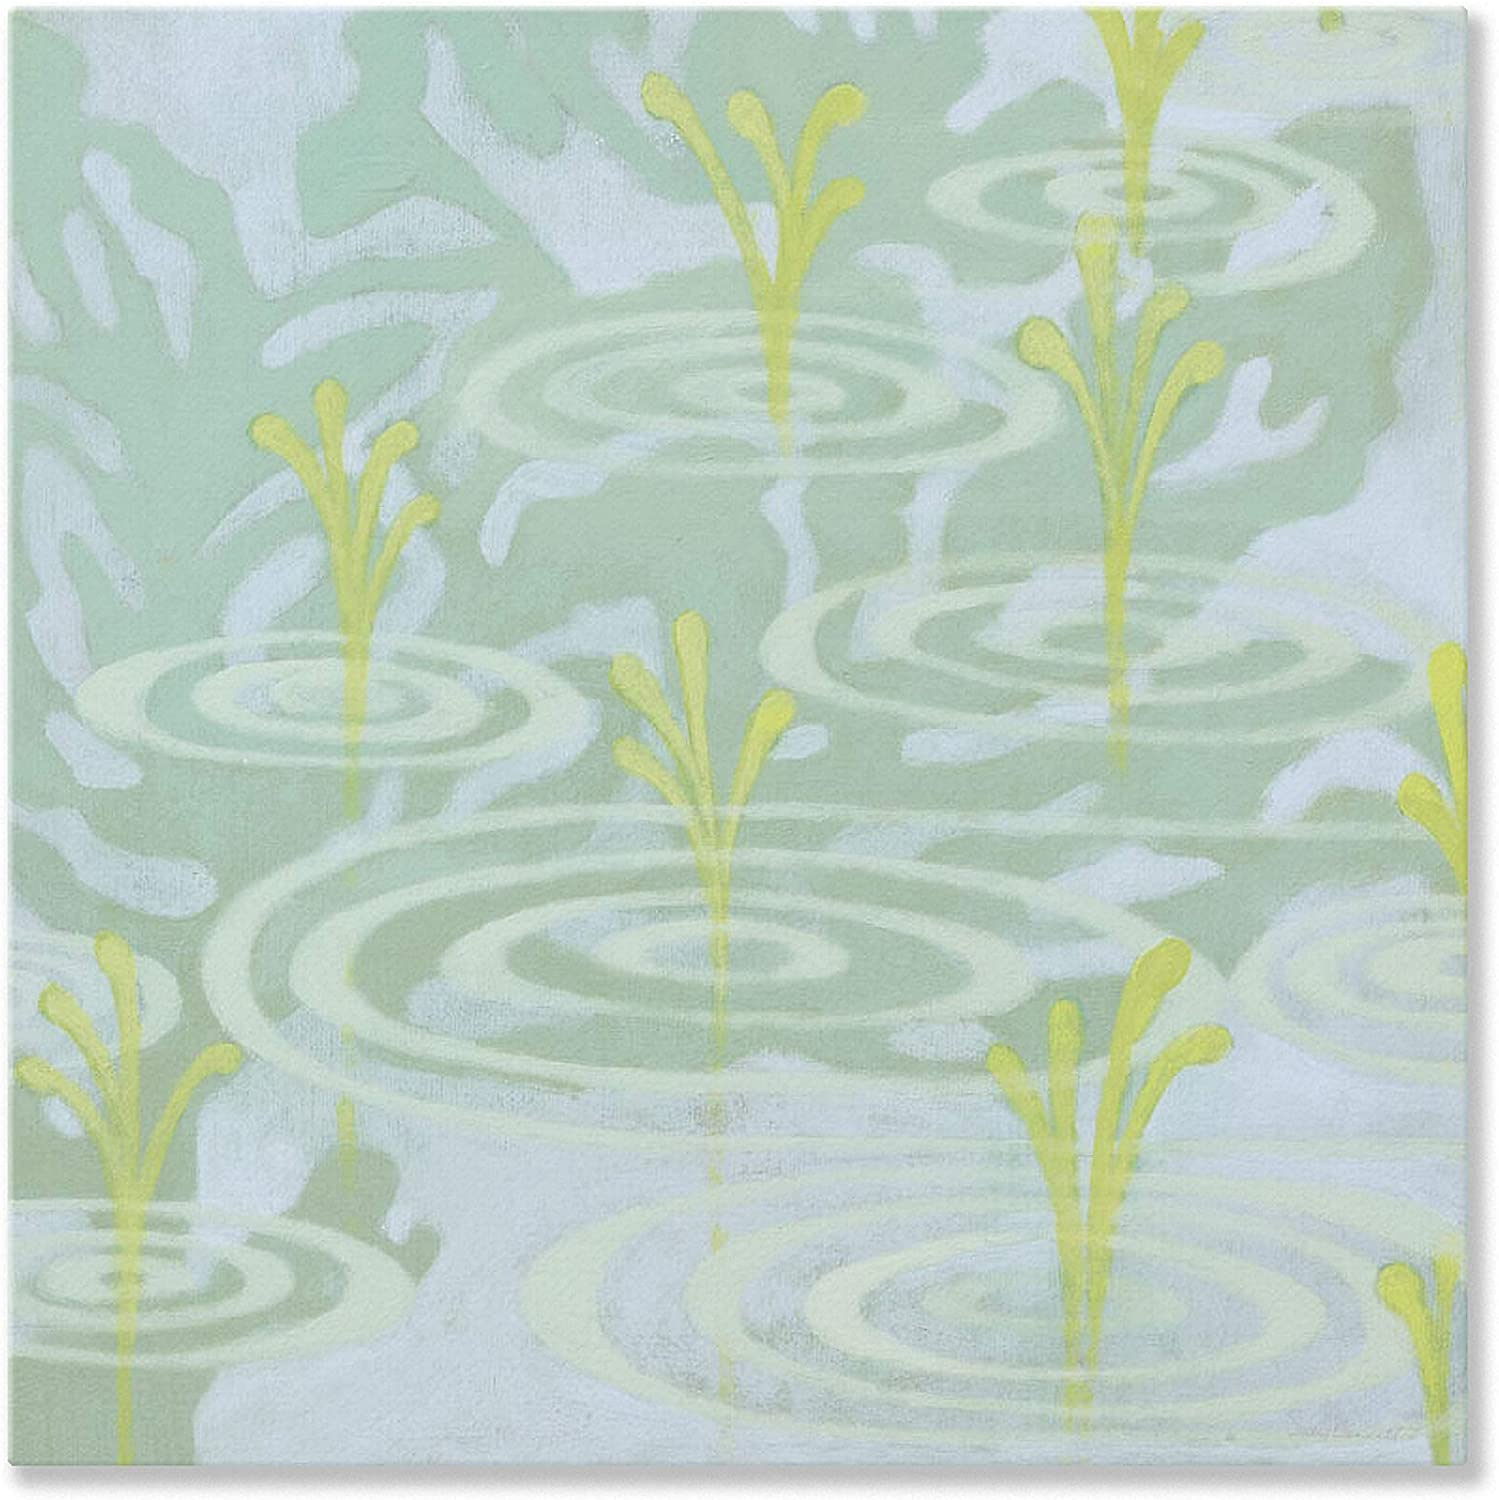 Oopsy Daisy bluee Pond From Gulf Coast Shadows Stretched Canvas Wall Art by Sally Bennett, 14 by 14Inch